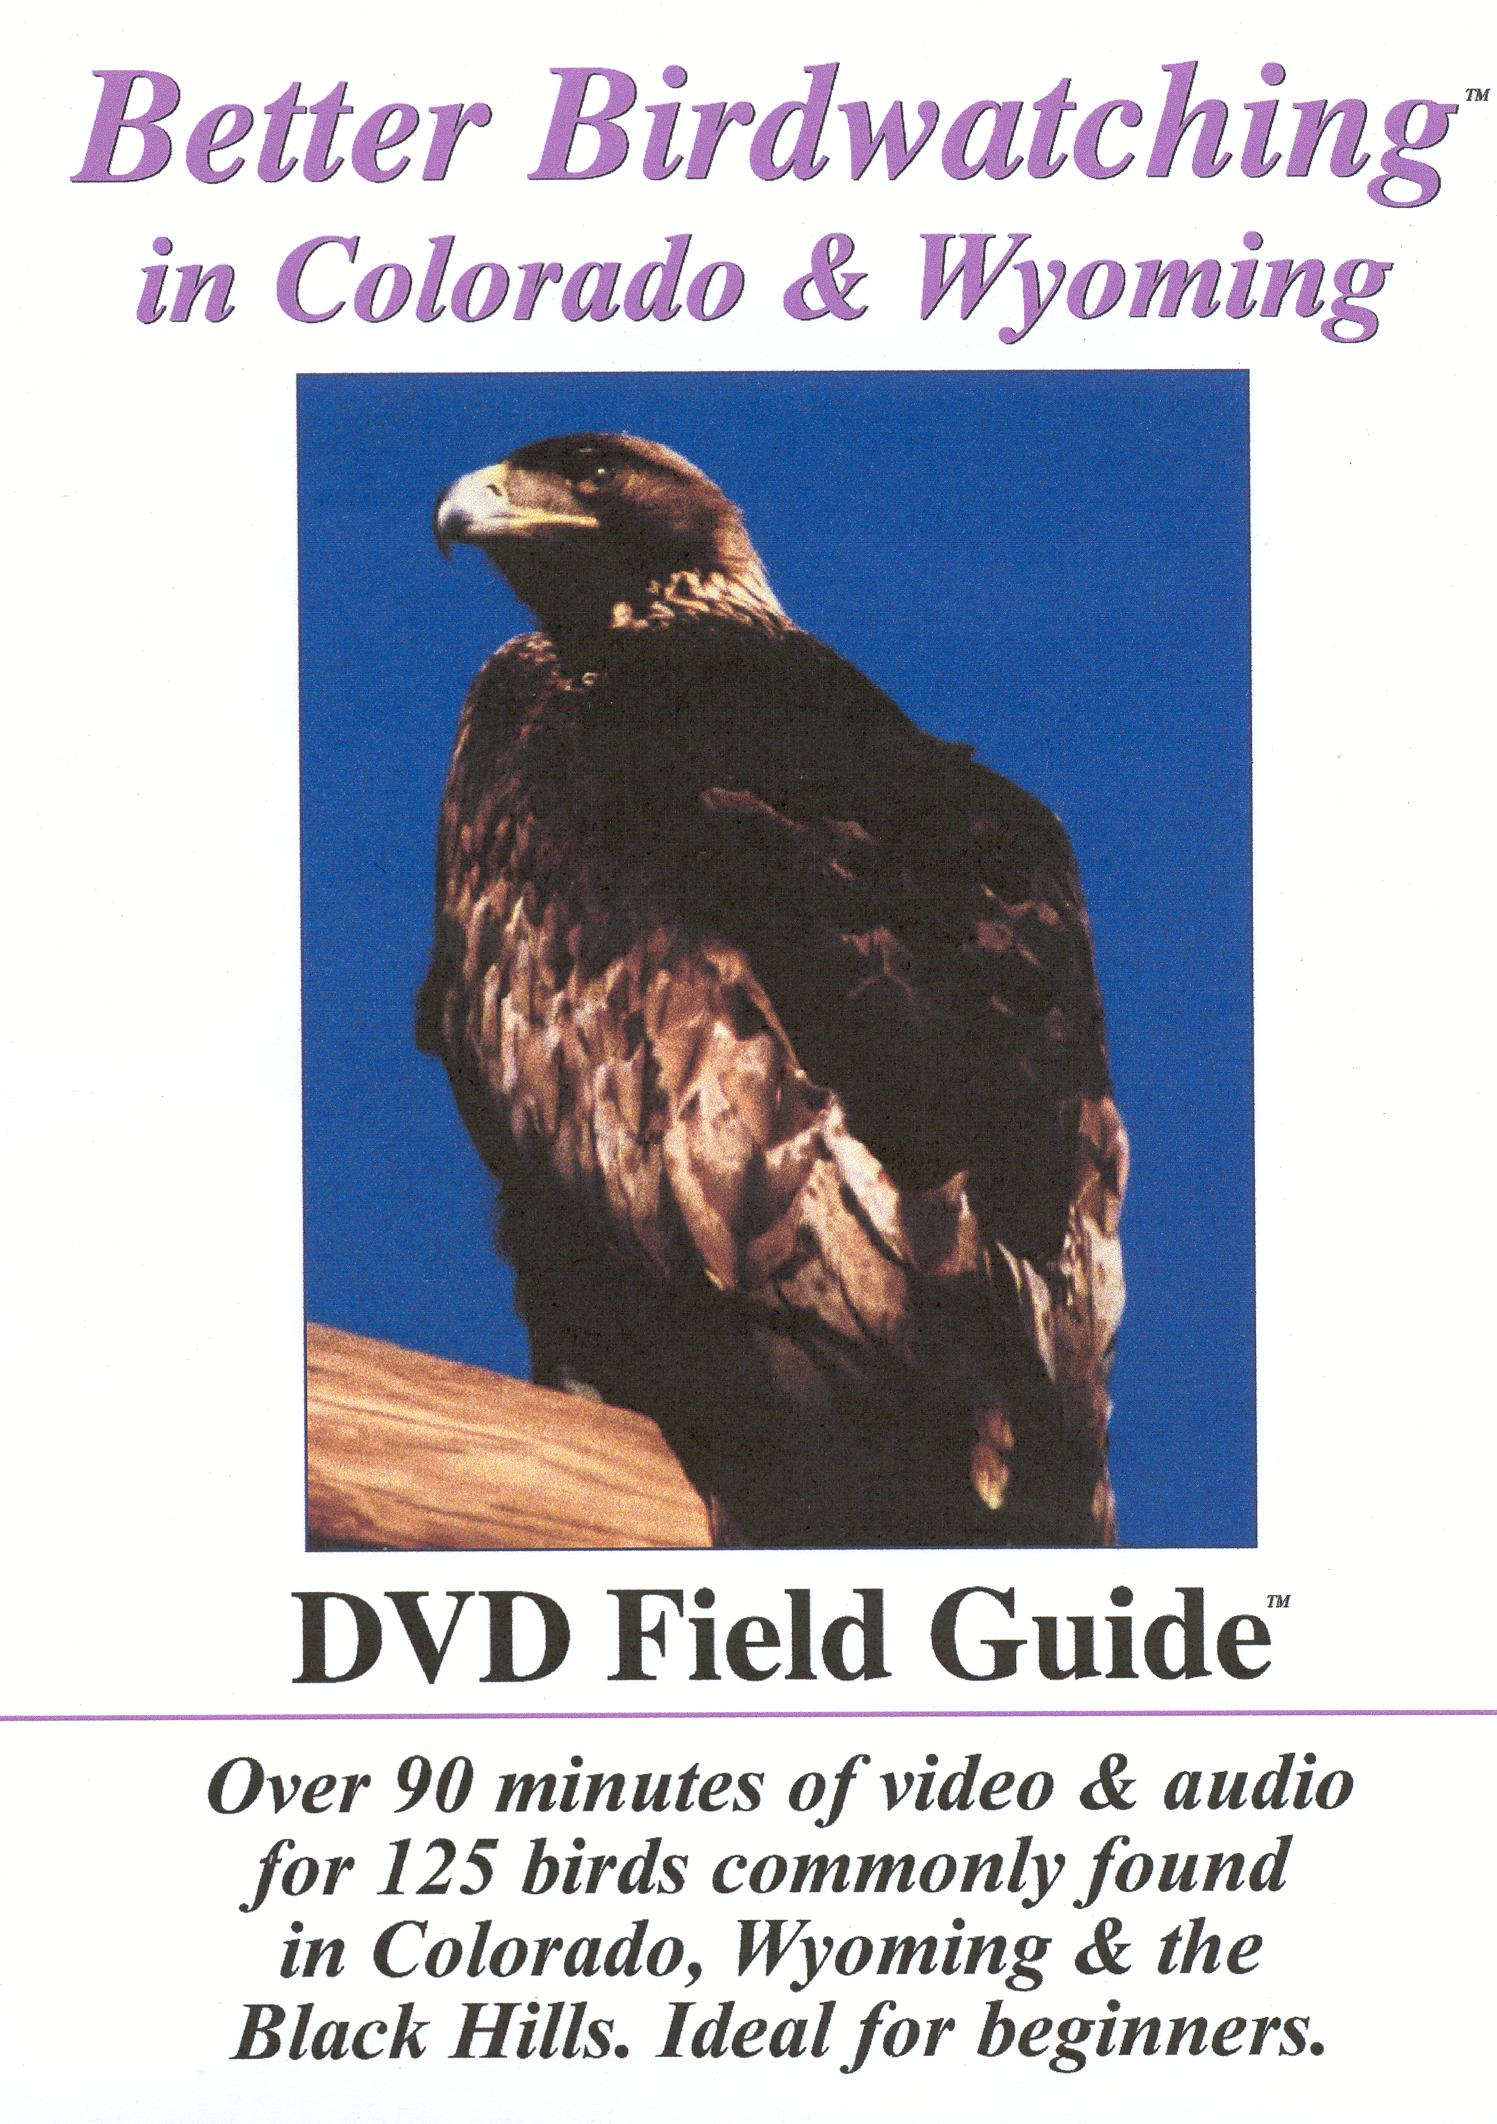 Better Birdwatching in Colorado and Wyoming